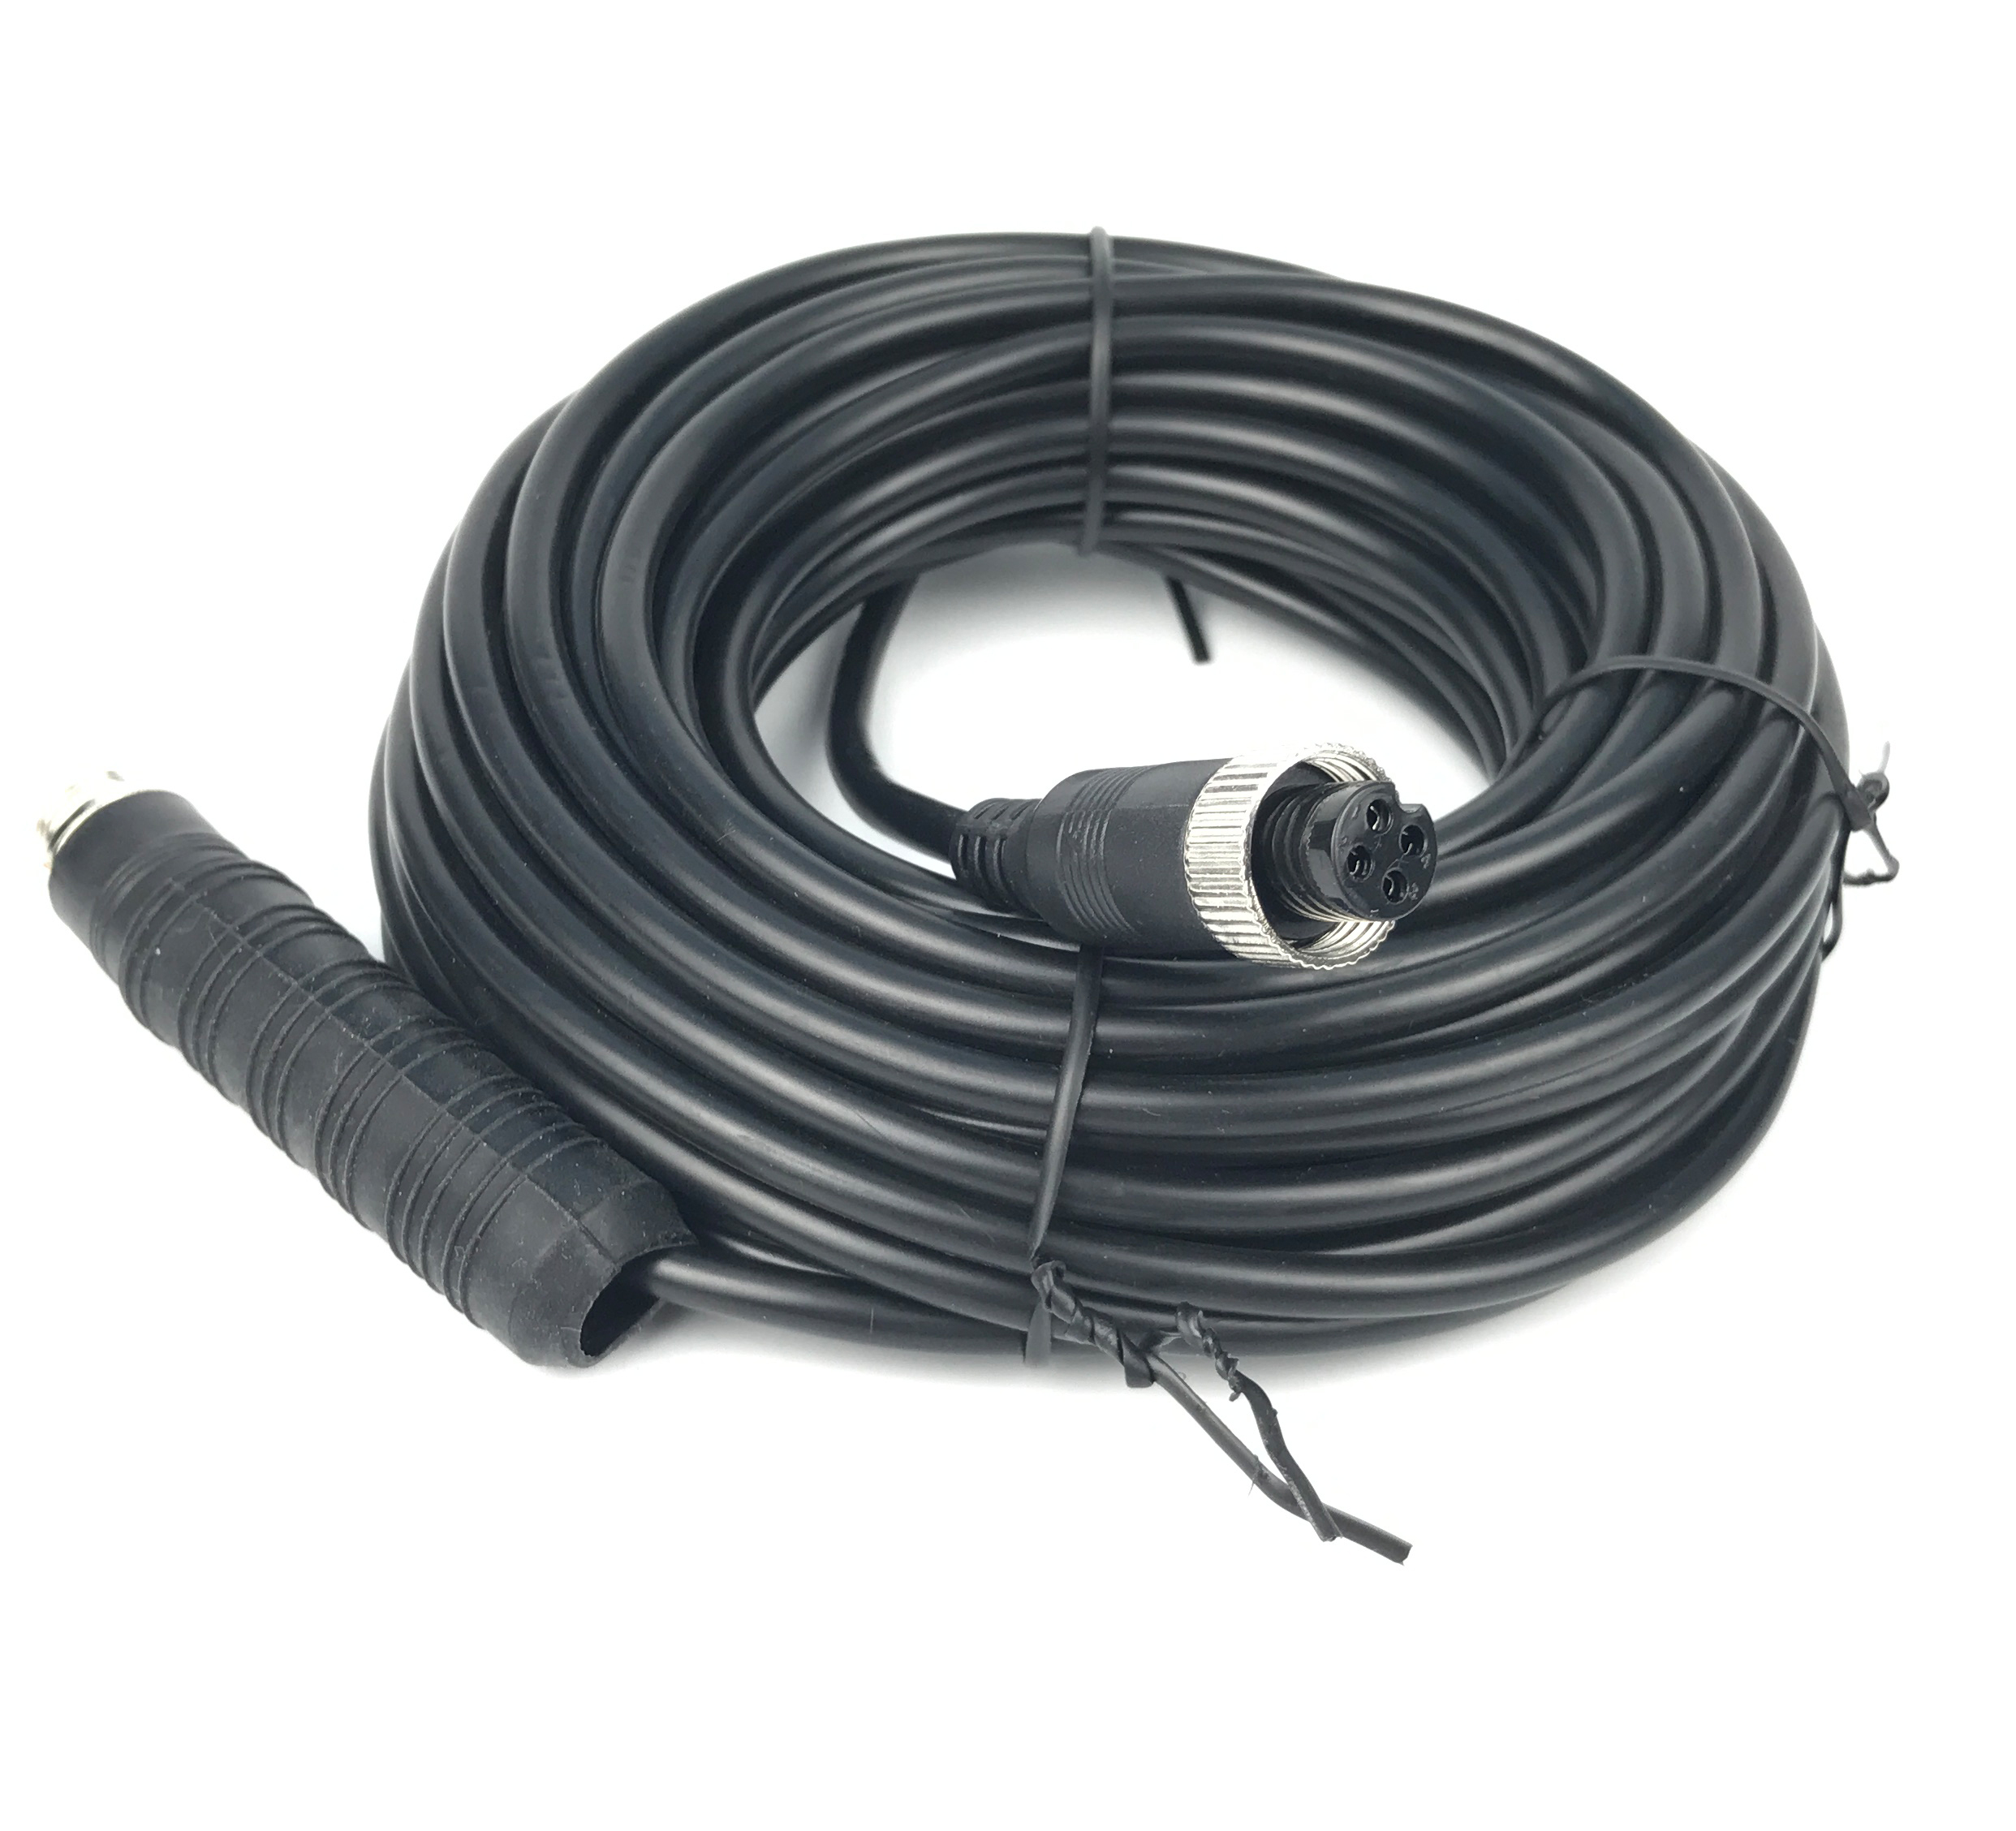 Uvusee 15Meters Car 4-Pin Aviation Video Extension Cable For CCTV Rearview Camera Truck Bus Boat  Vehicle Backup Monitor